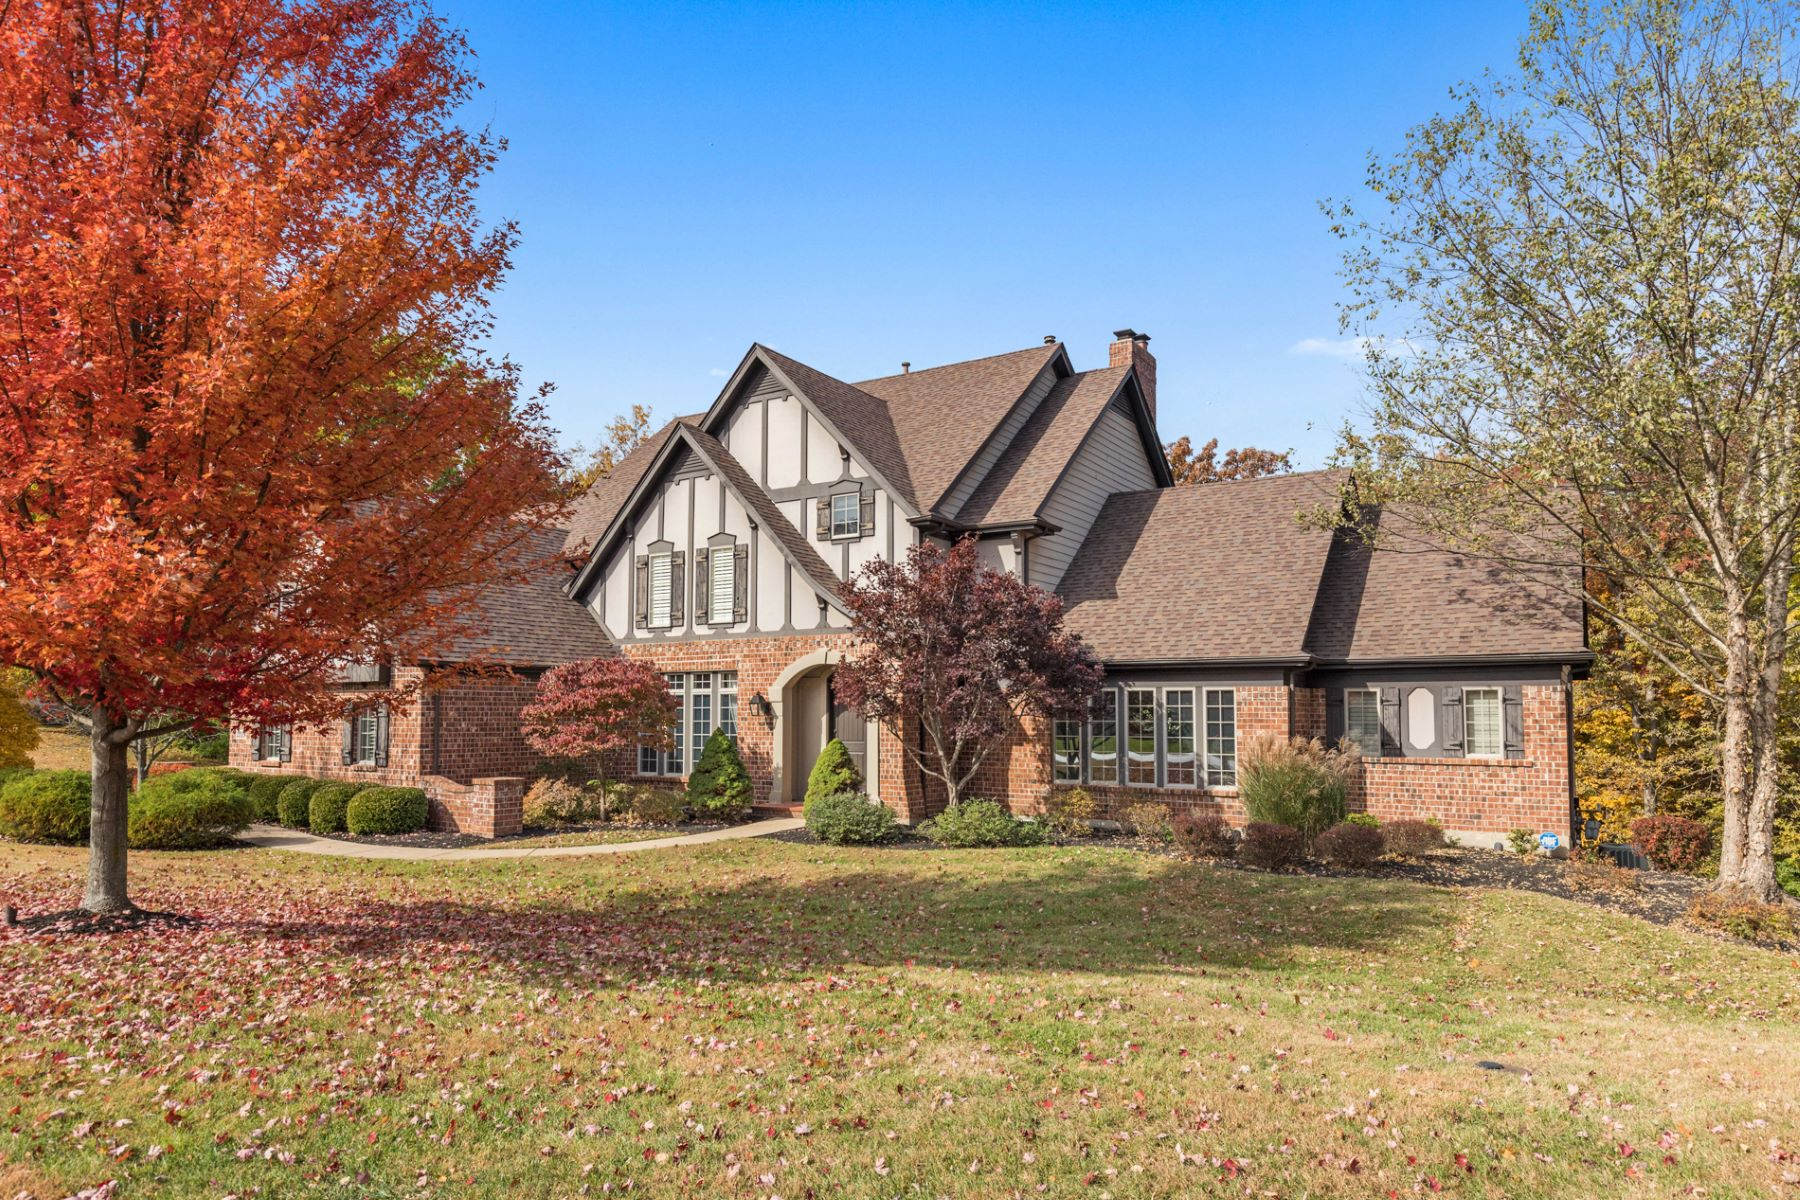 Additional photo for property listing at 2119 Saddle Creek Ridge Dr Wildwood, Missouri 63005 United States